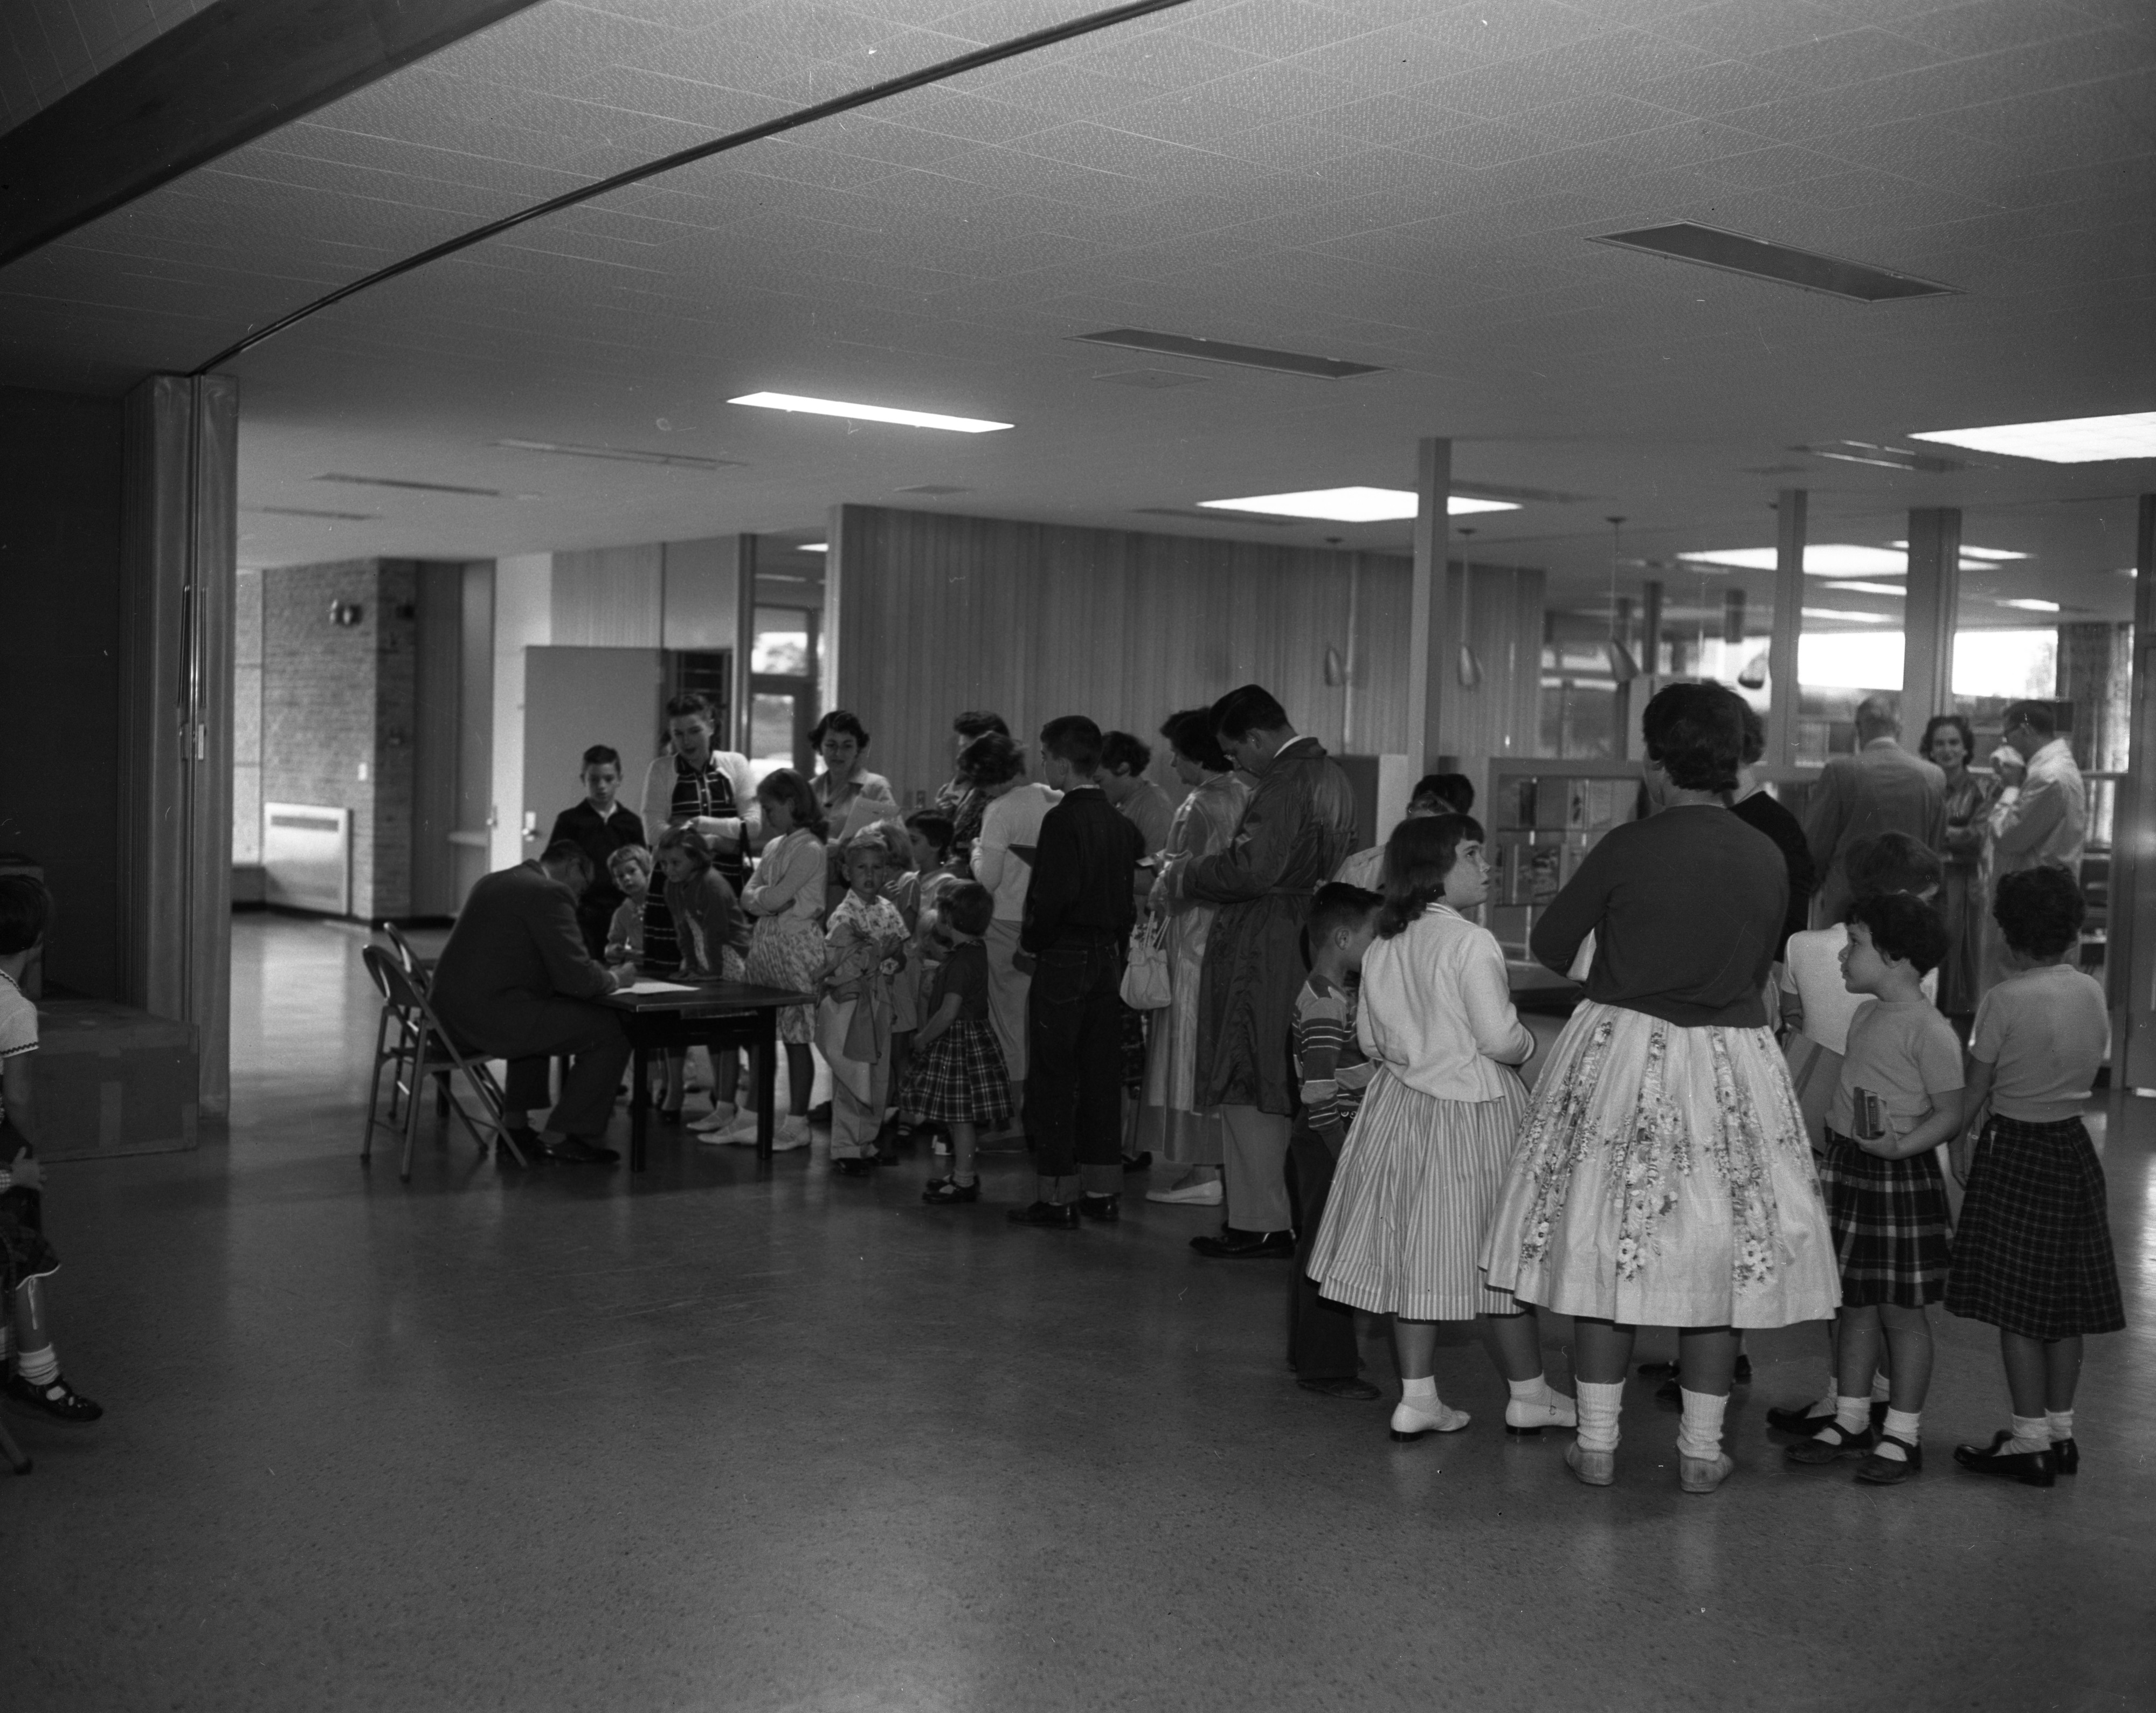 Registration Underway On First Day at New Wines Elementary School, September 1957 image